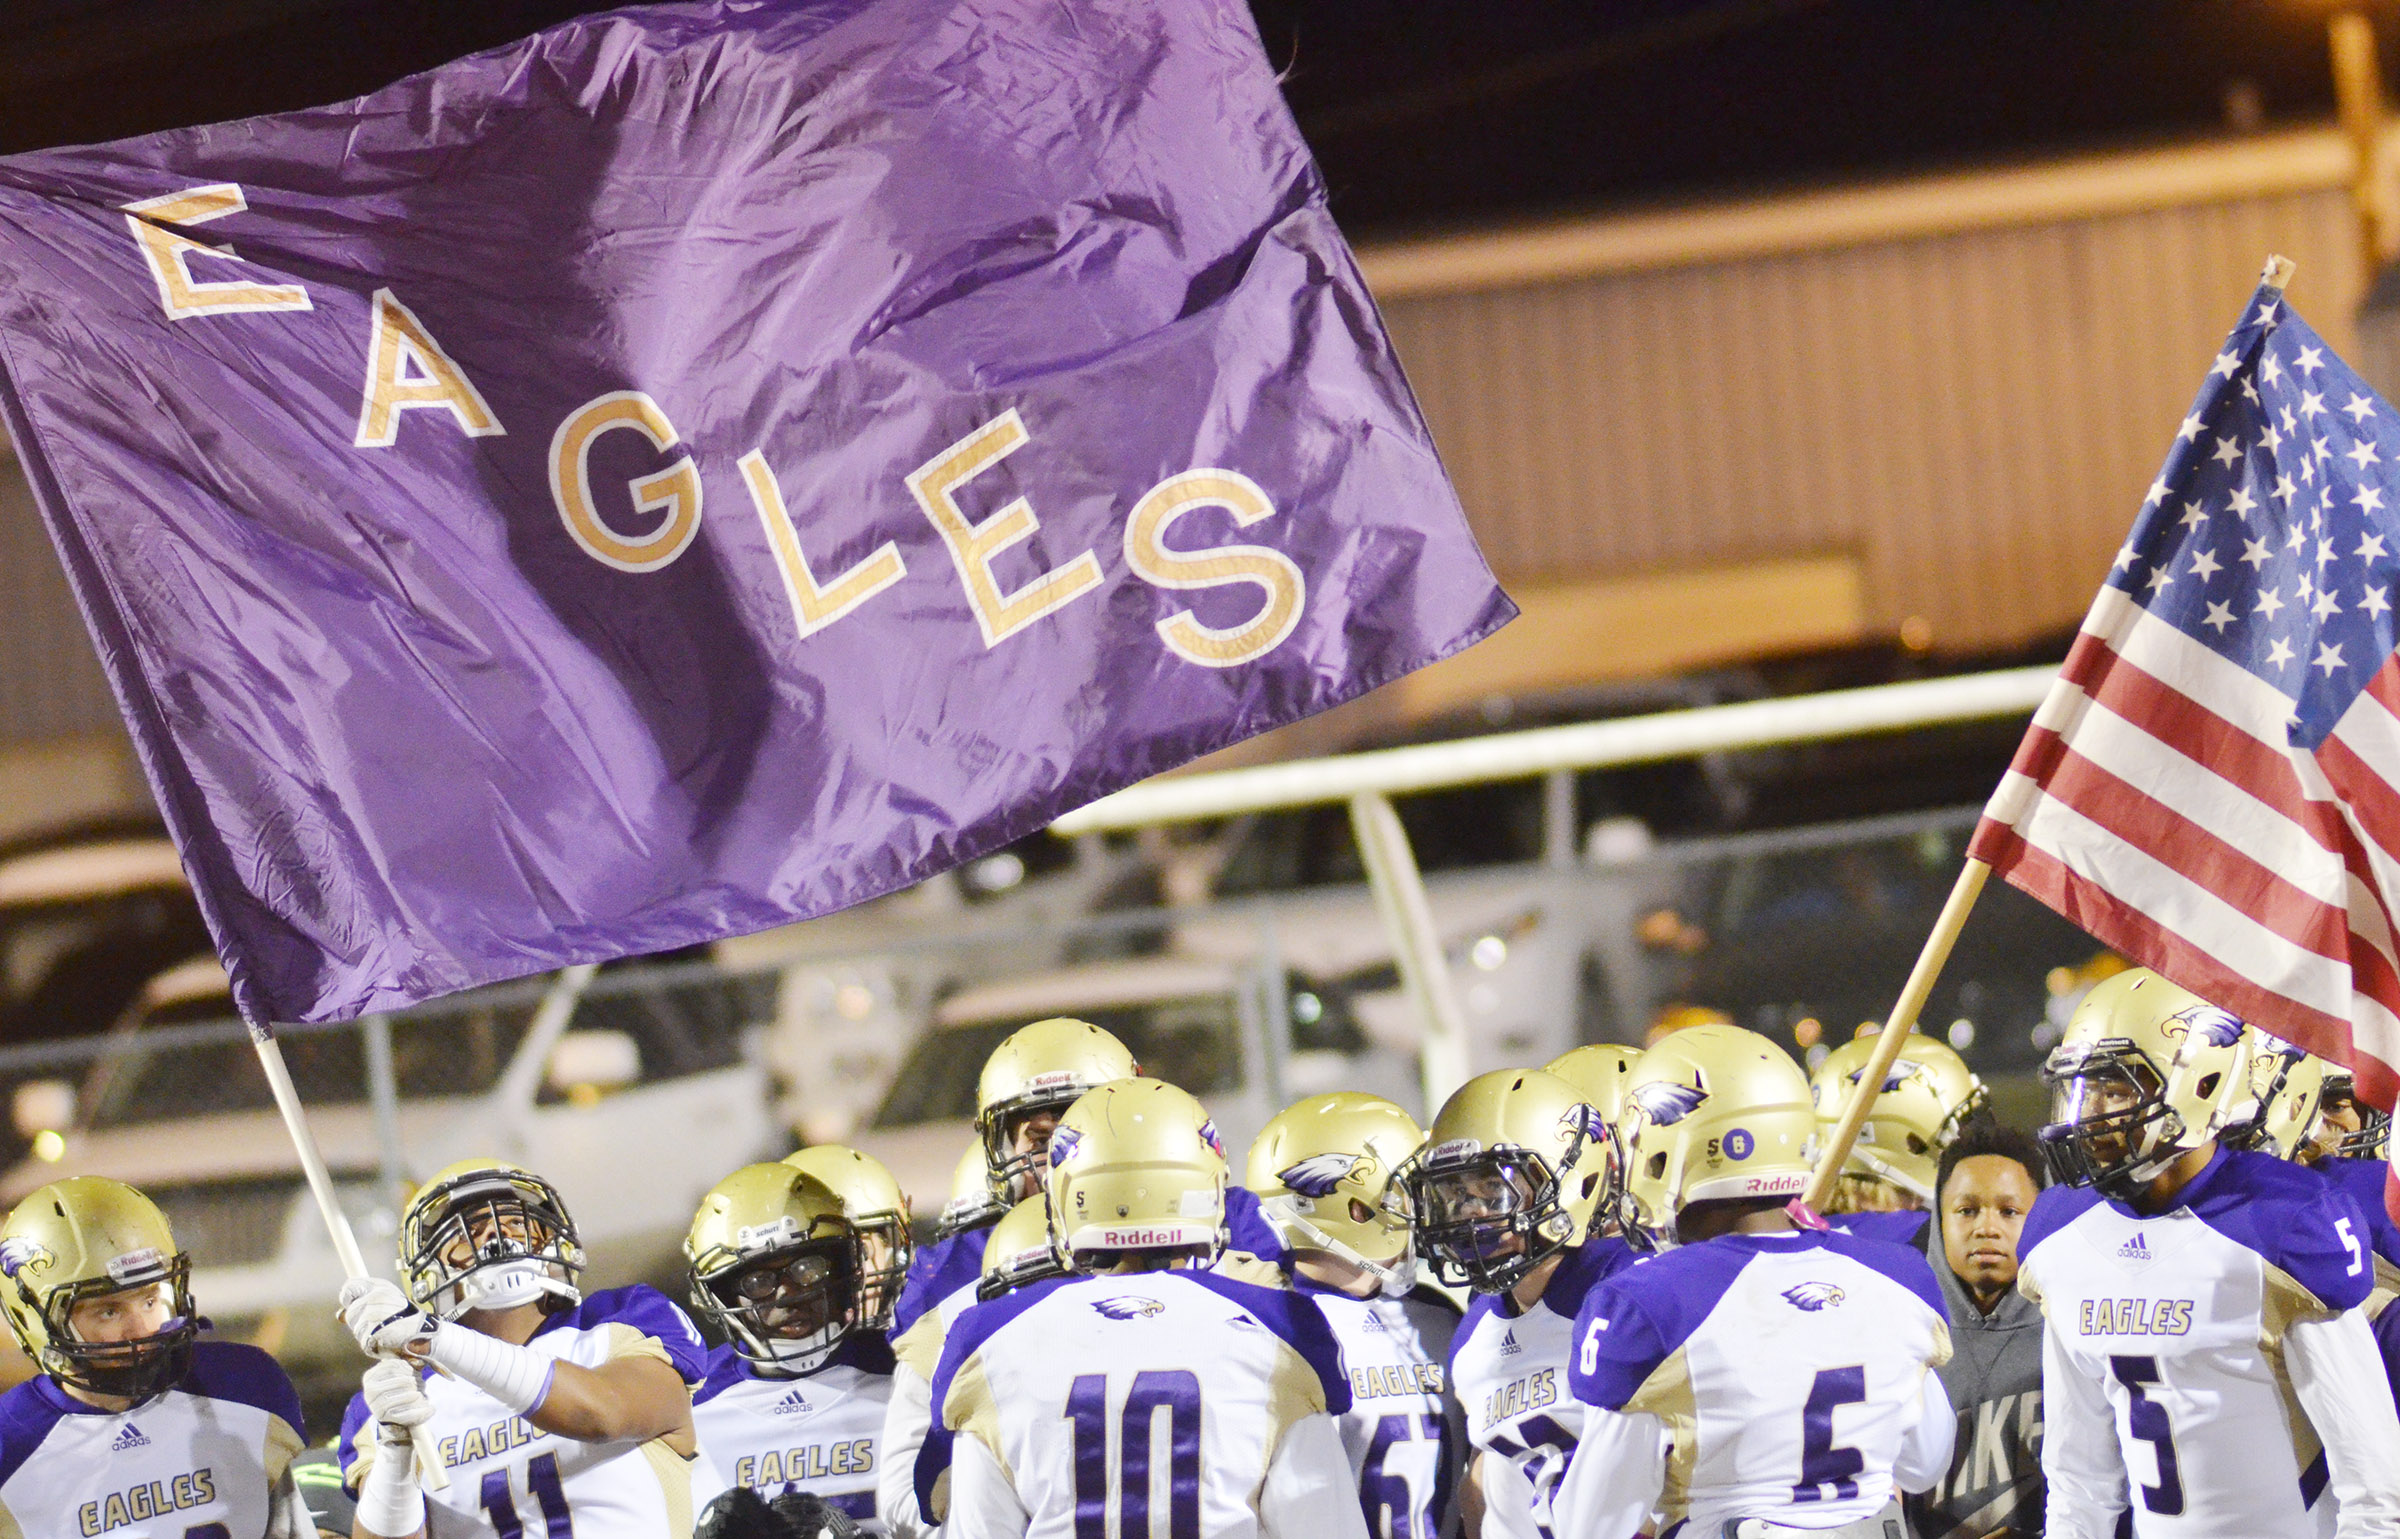 CHS football team to host Beechwood in state semi-finals game